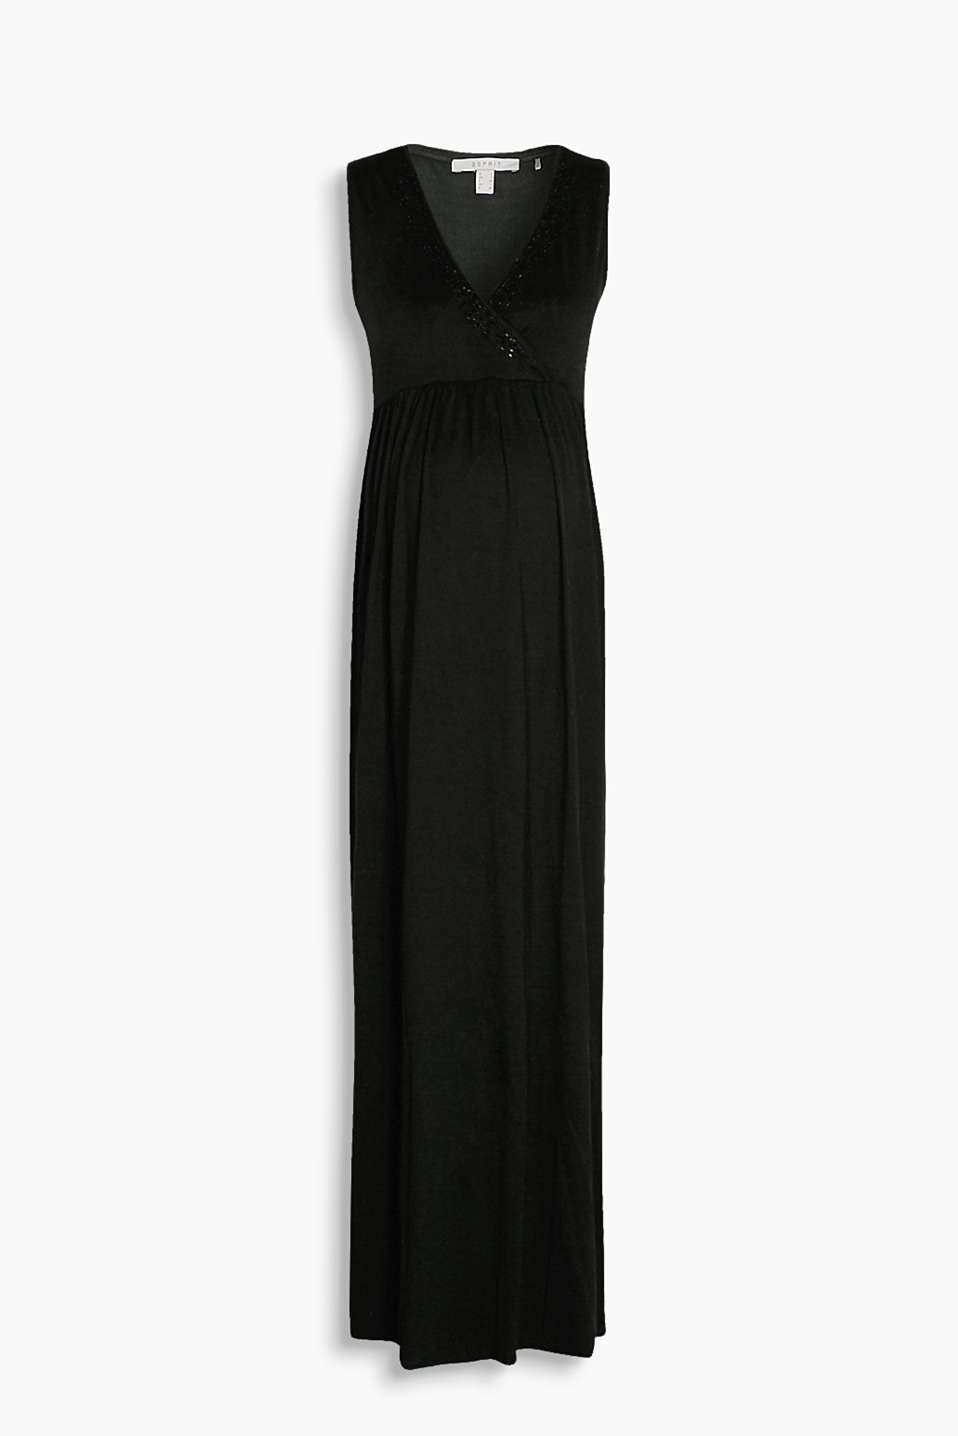 Softly draped jersey dress with a sequin neckline and a wrap-over effect